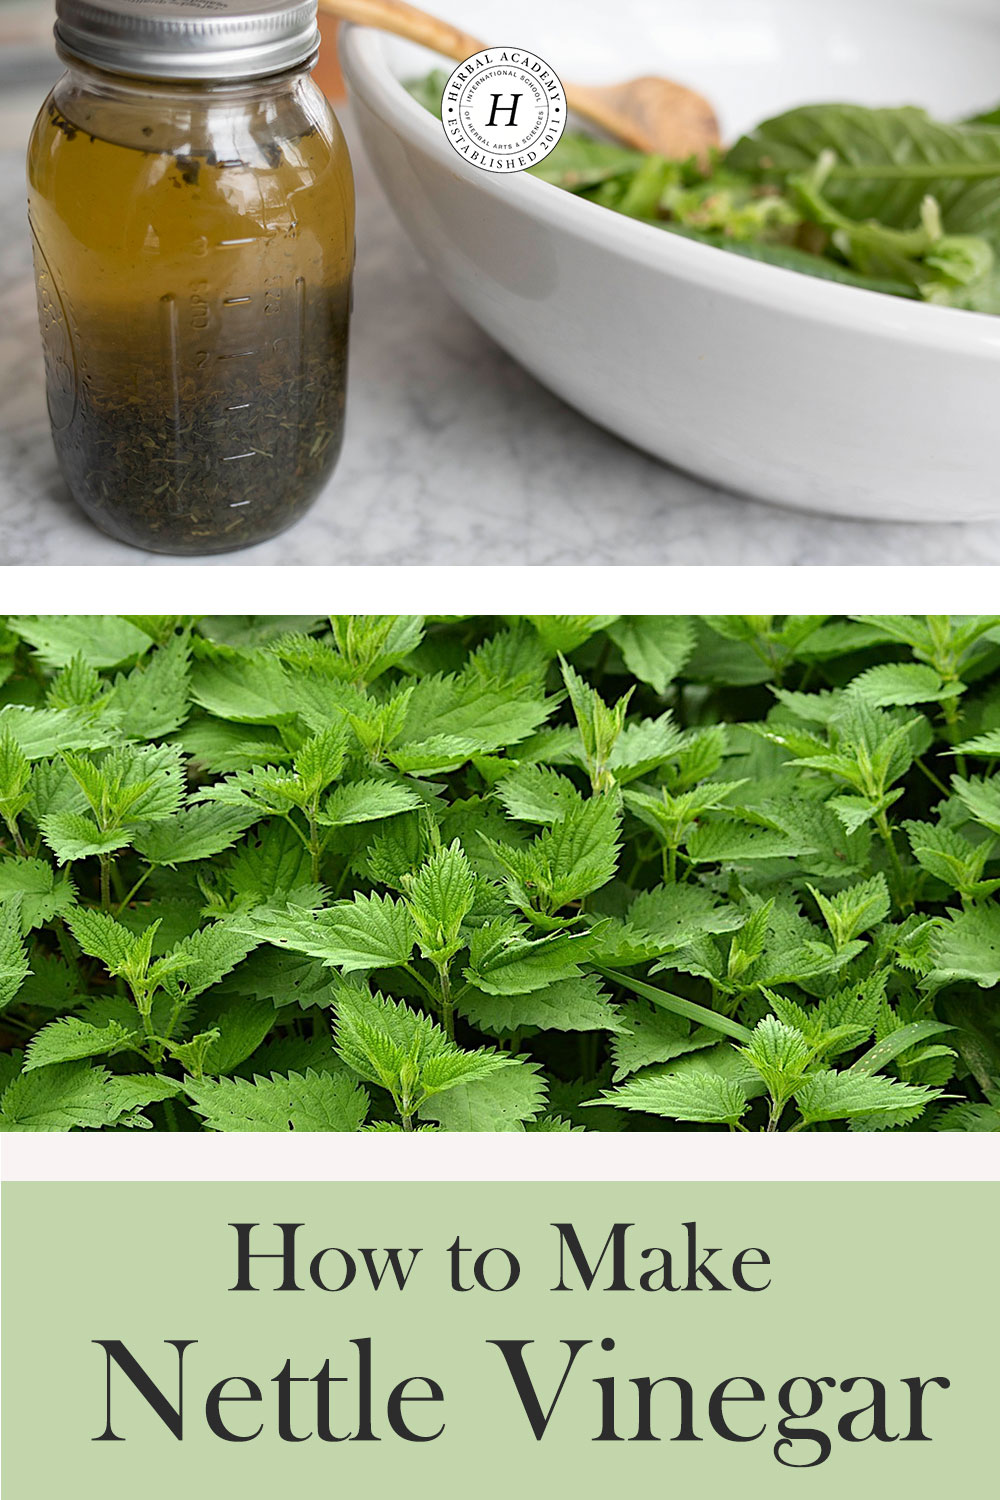 Nettle Vinegar: A Spring Alterative Recipe | Herbal Academy | Learn how to make delicious nettle vinegar using dried nettle and apple cider vinegar to support the liver and aid in gentle cleansing and detoxification.